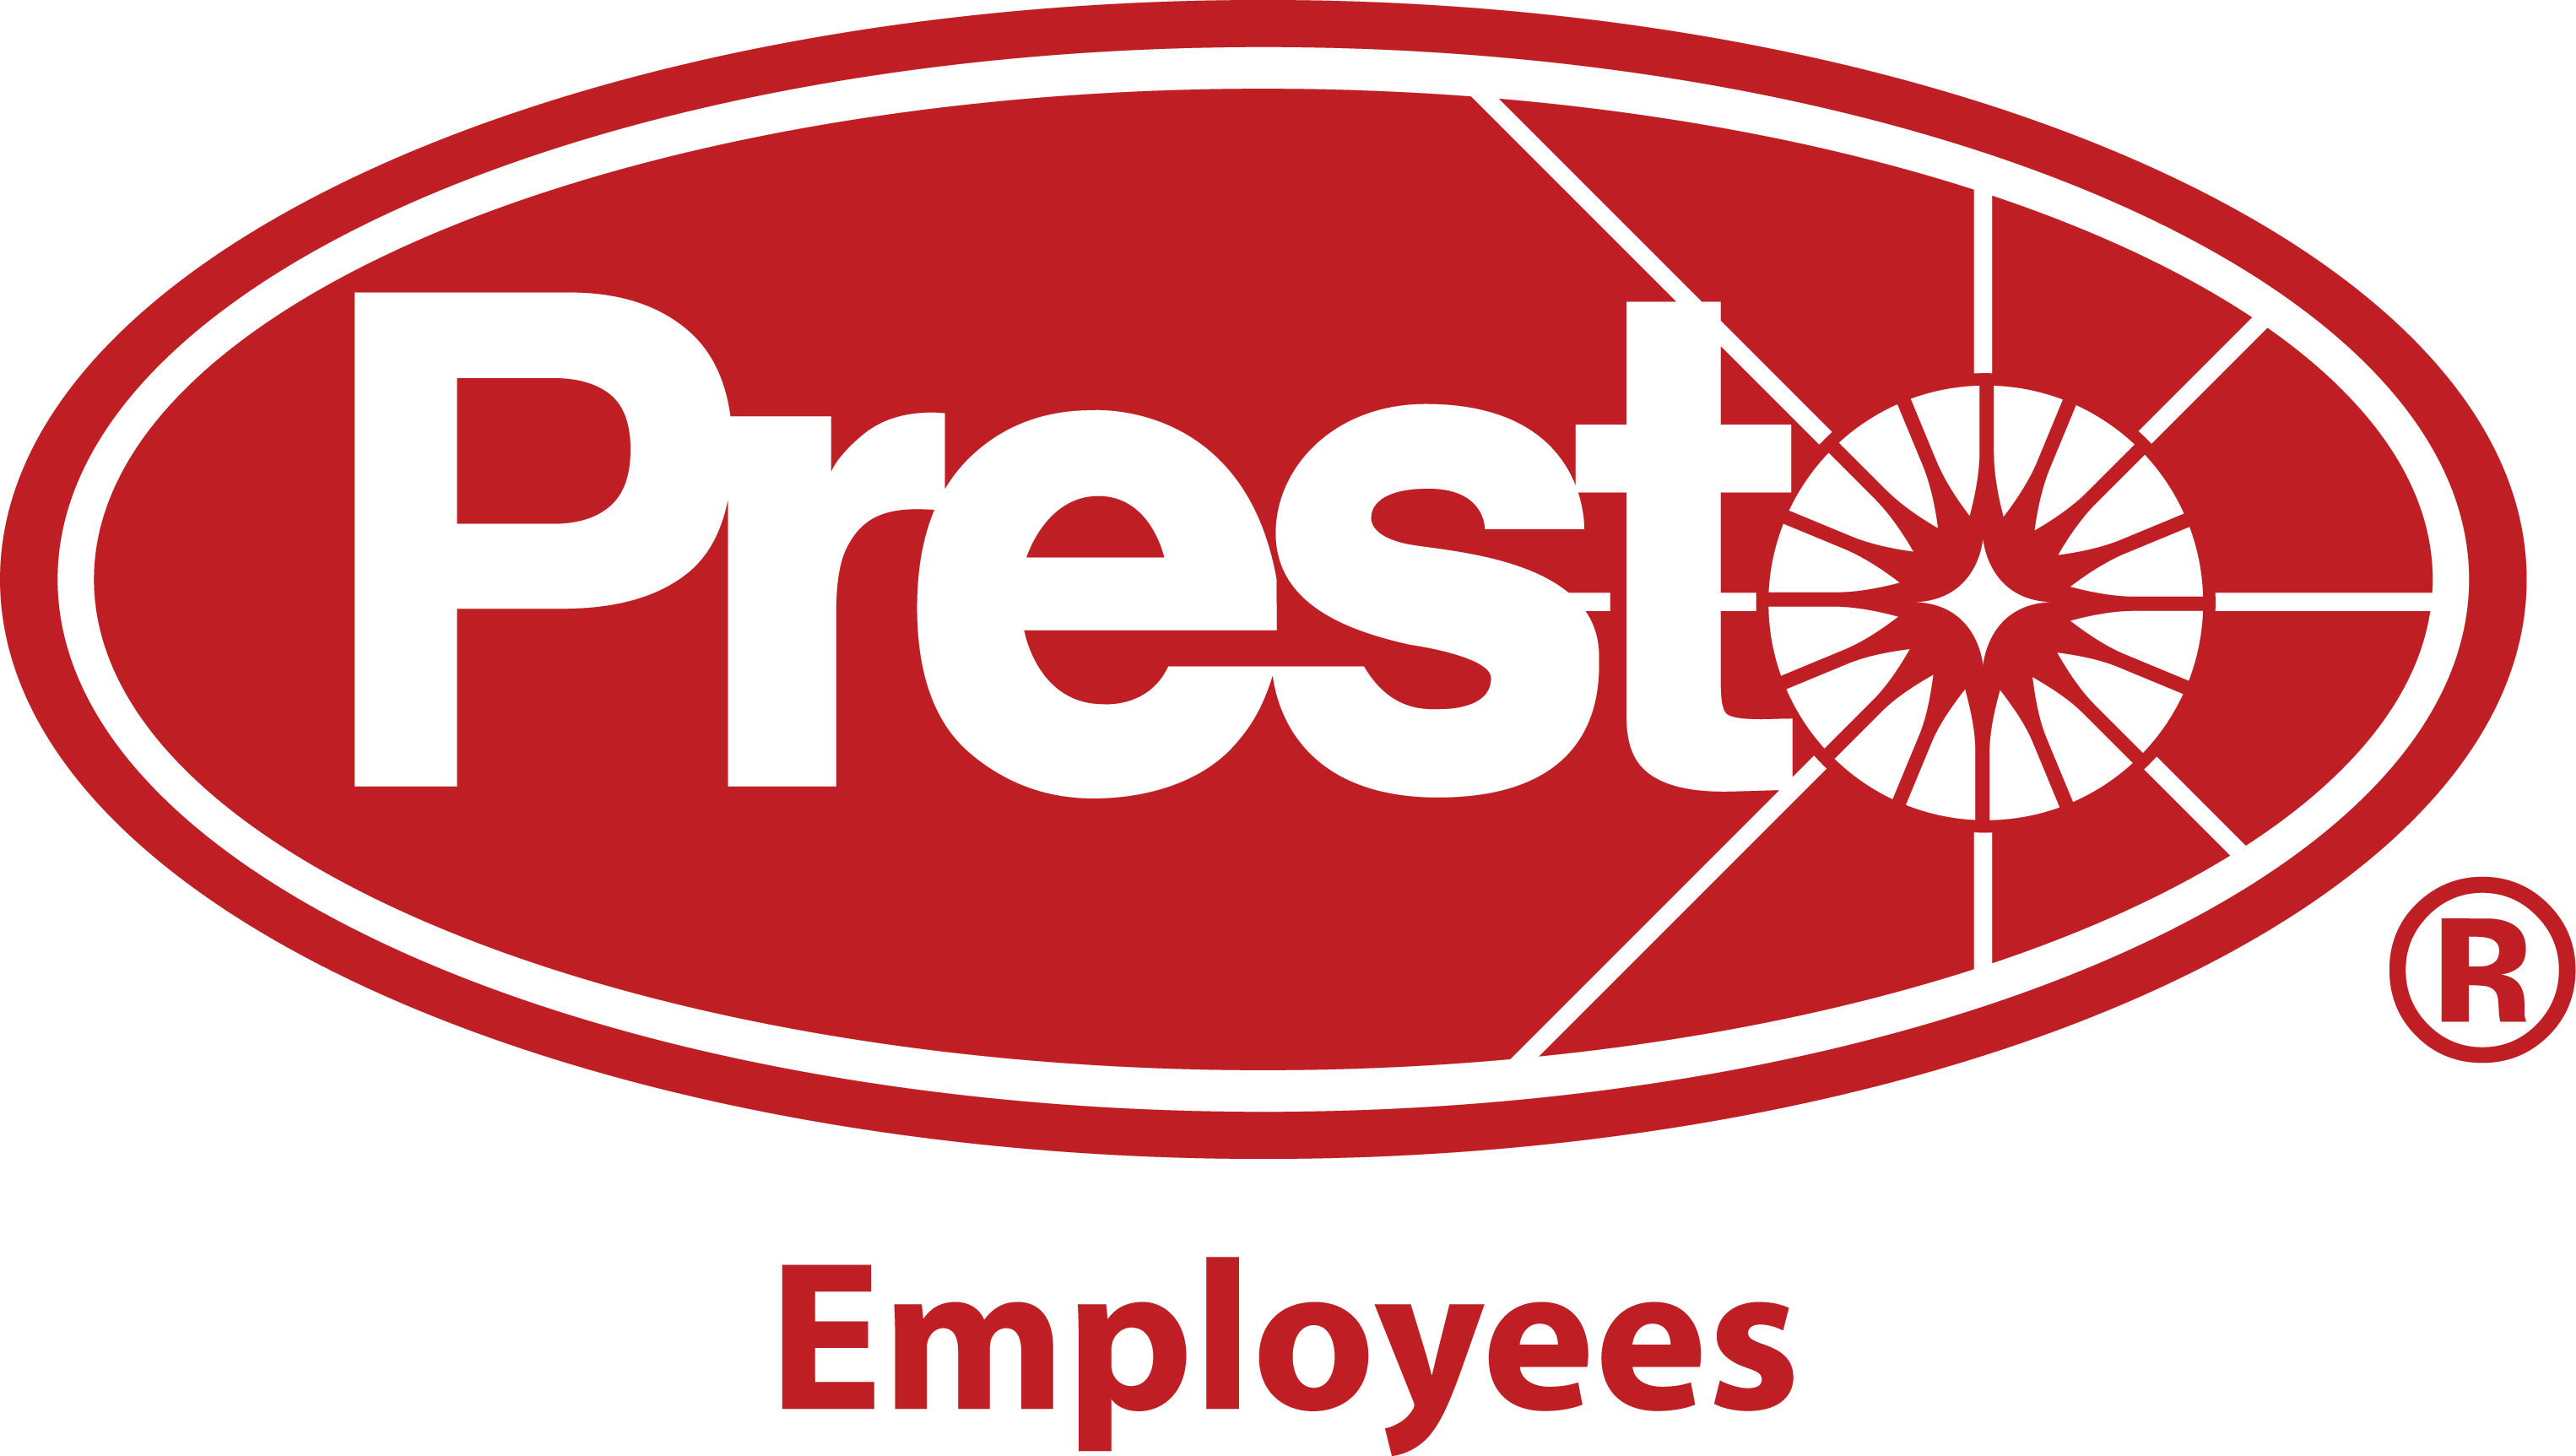 Presto Employees logo